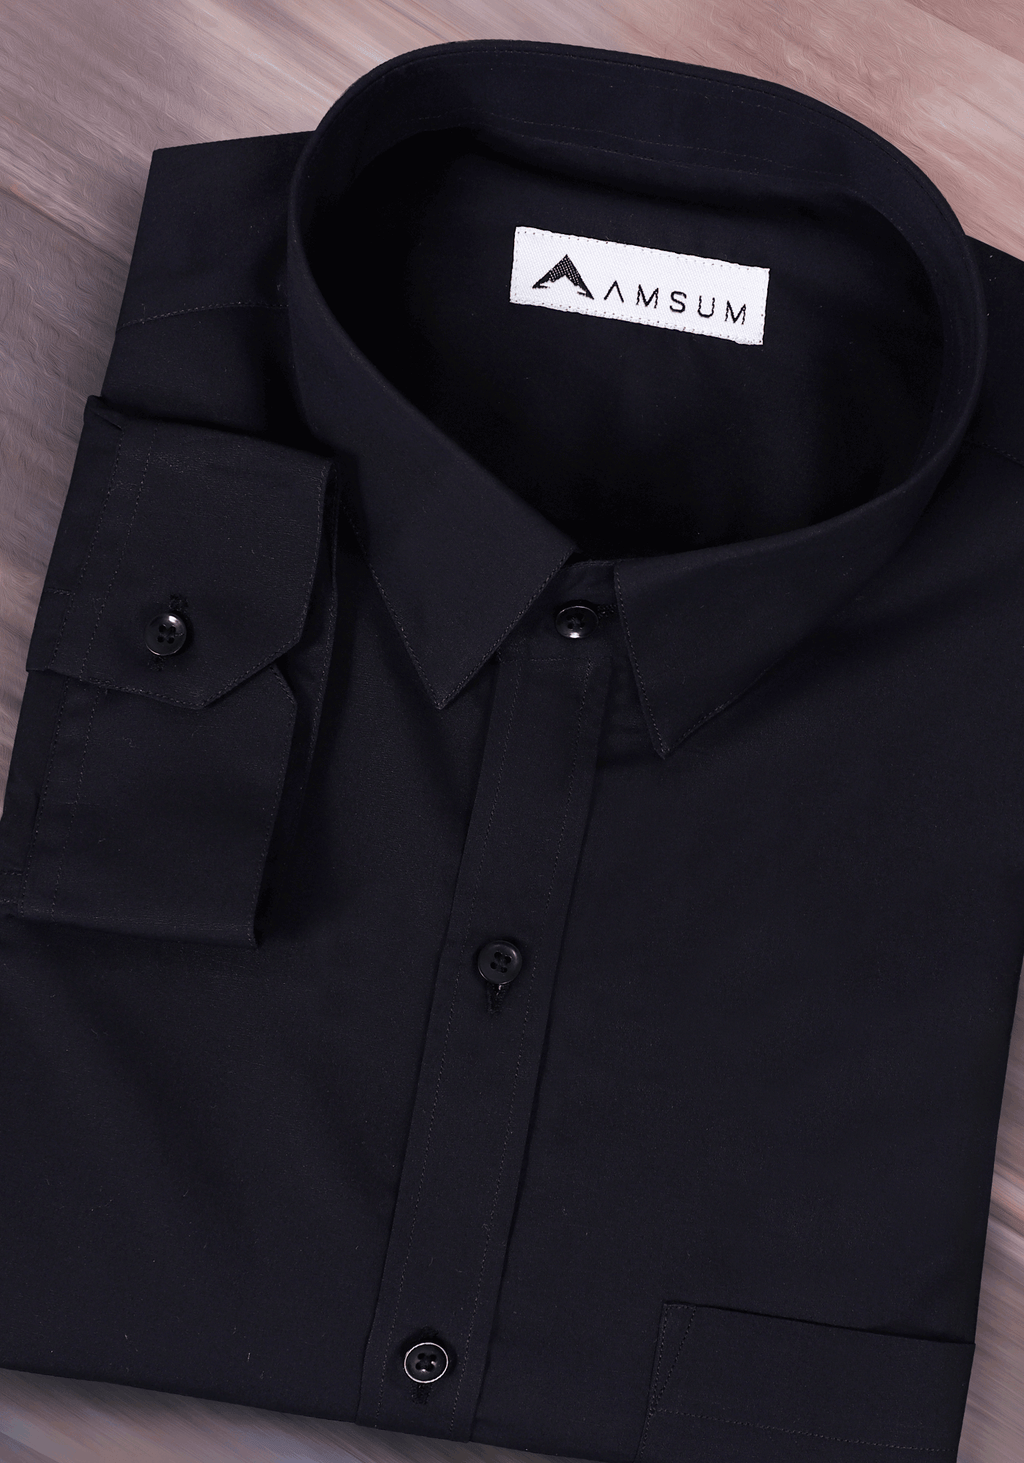 Dark Night Black Shirt (Comfortable Slim Fit)